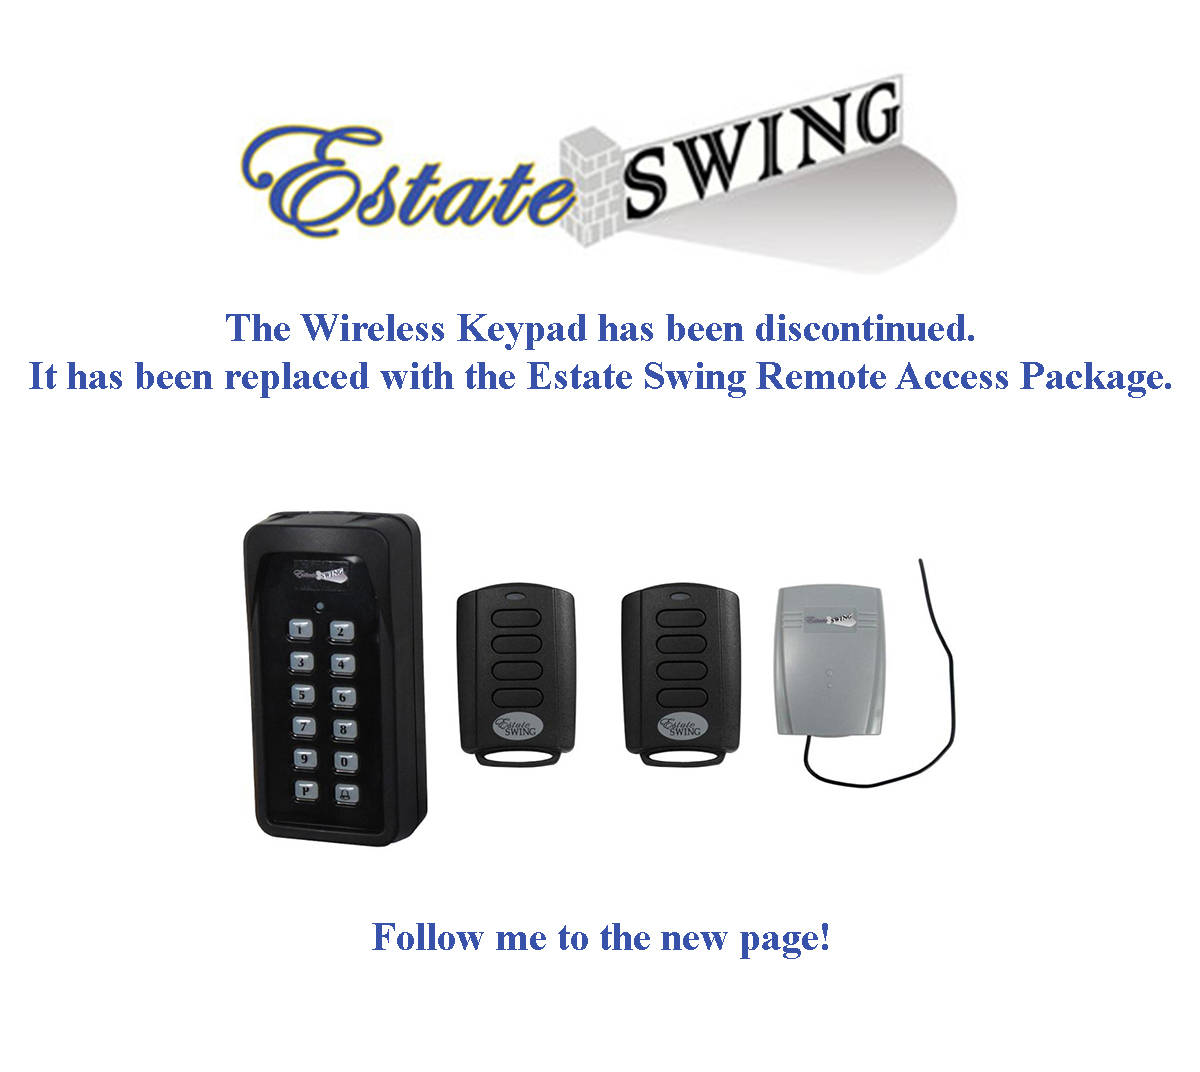 Sommer Wireless Keypad Discontinued